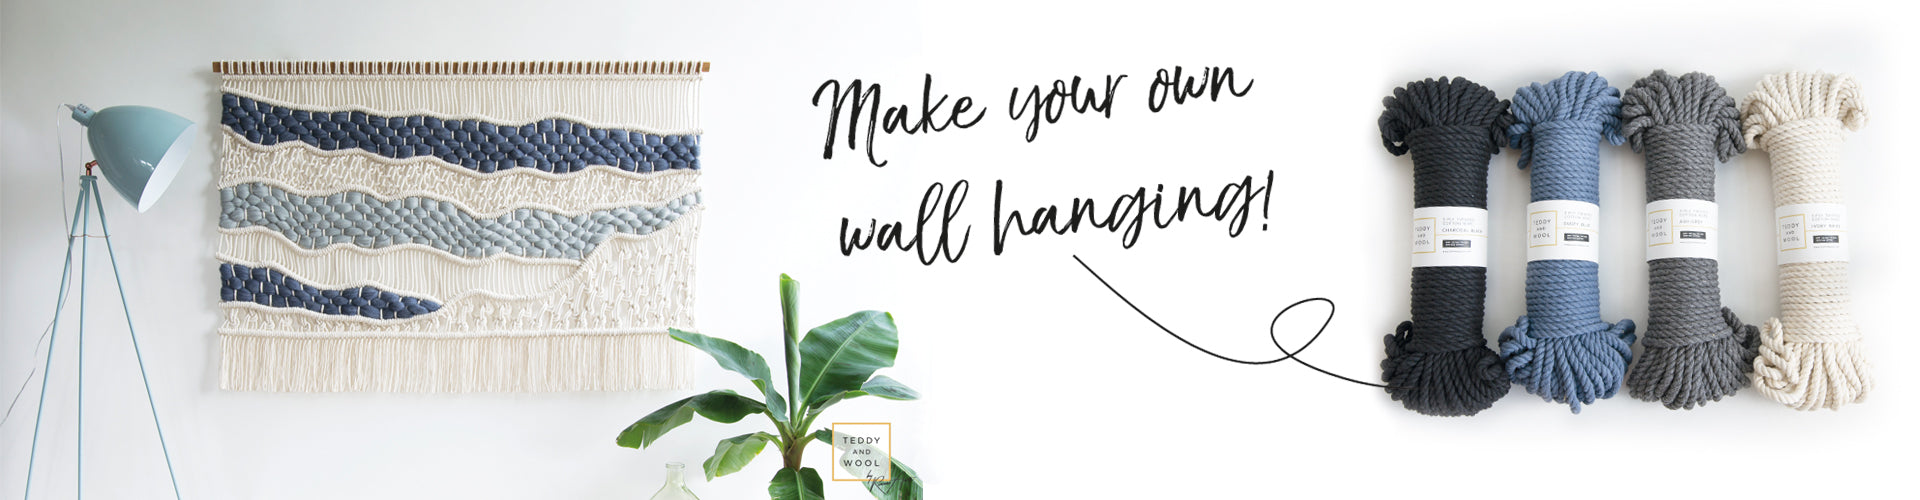 Make your own wall hanging!